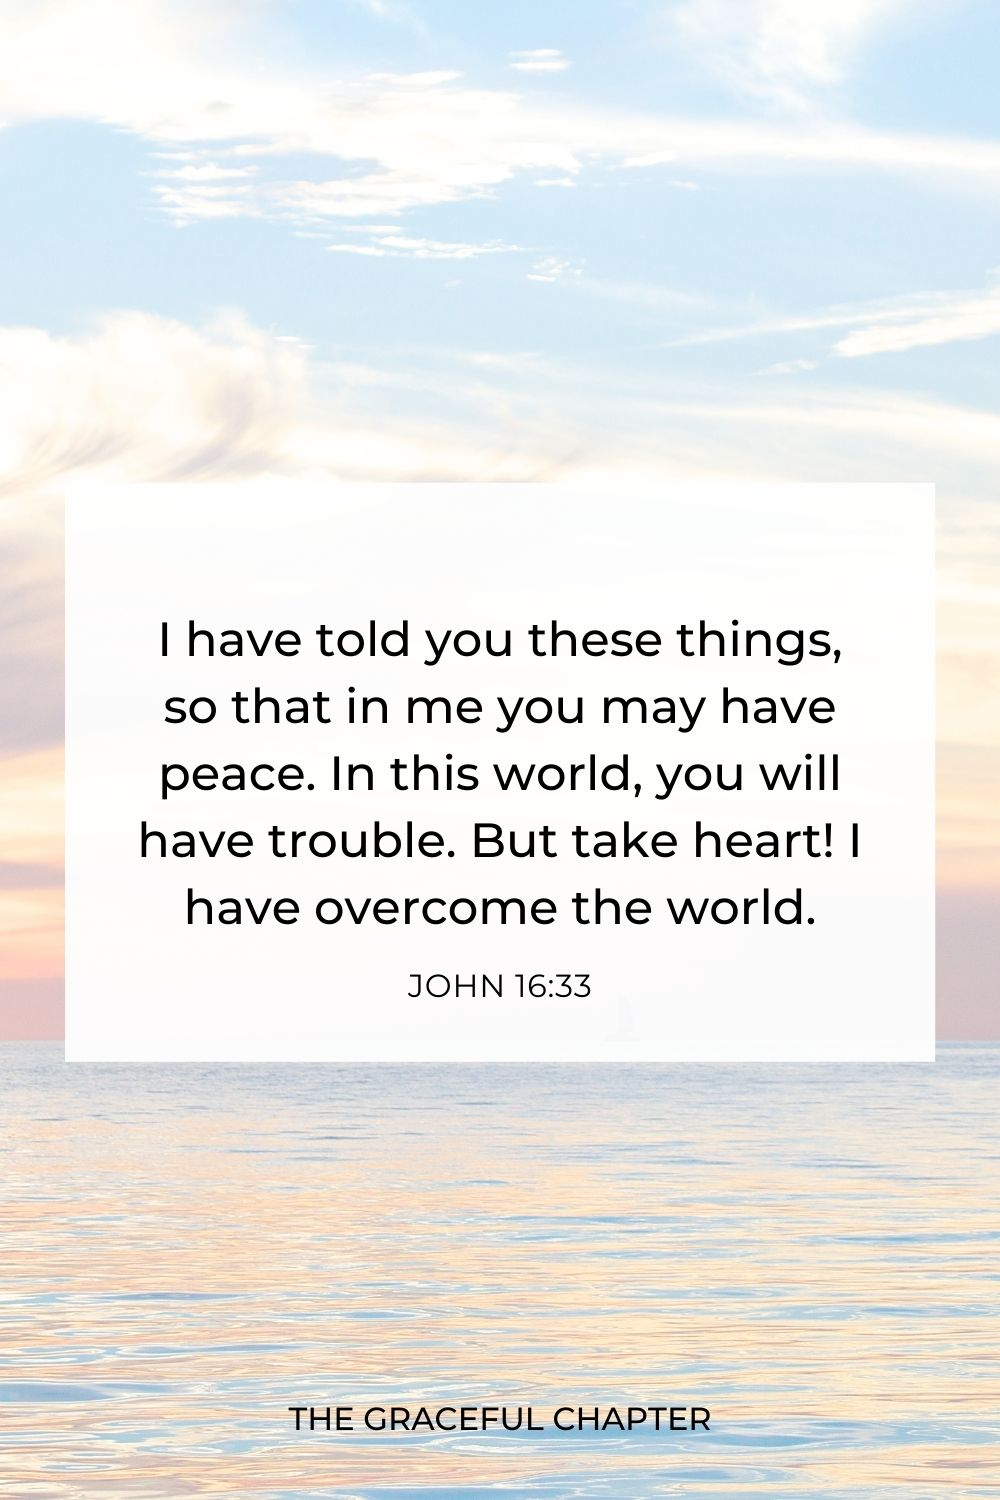 I have told you these things, so that in me you may have peace. In this world, you will have trouble. But take heart! I have overcome the world. John 16:33